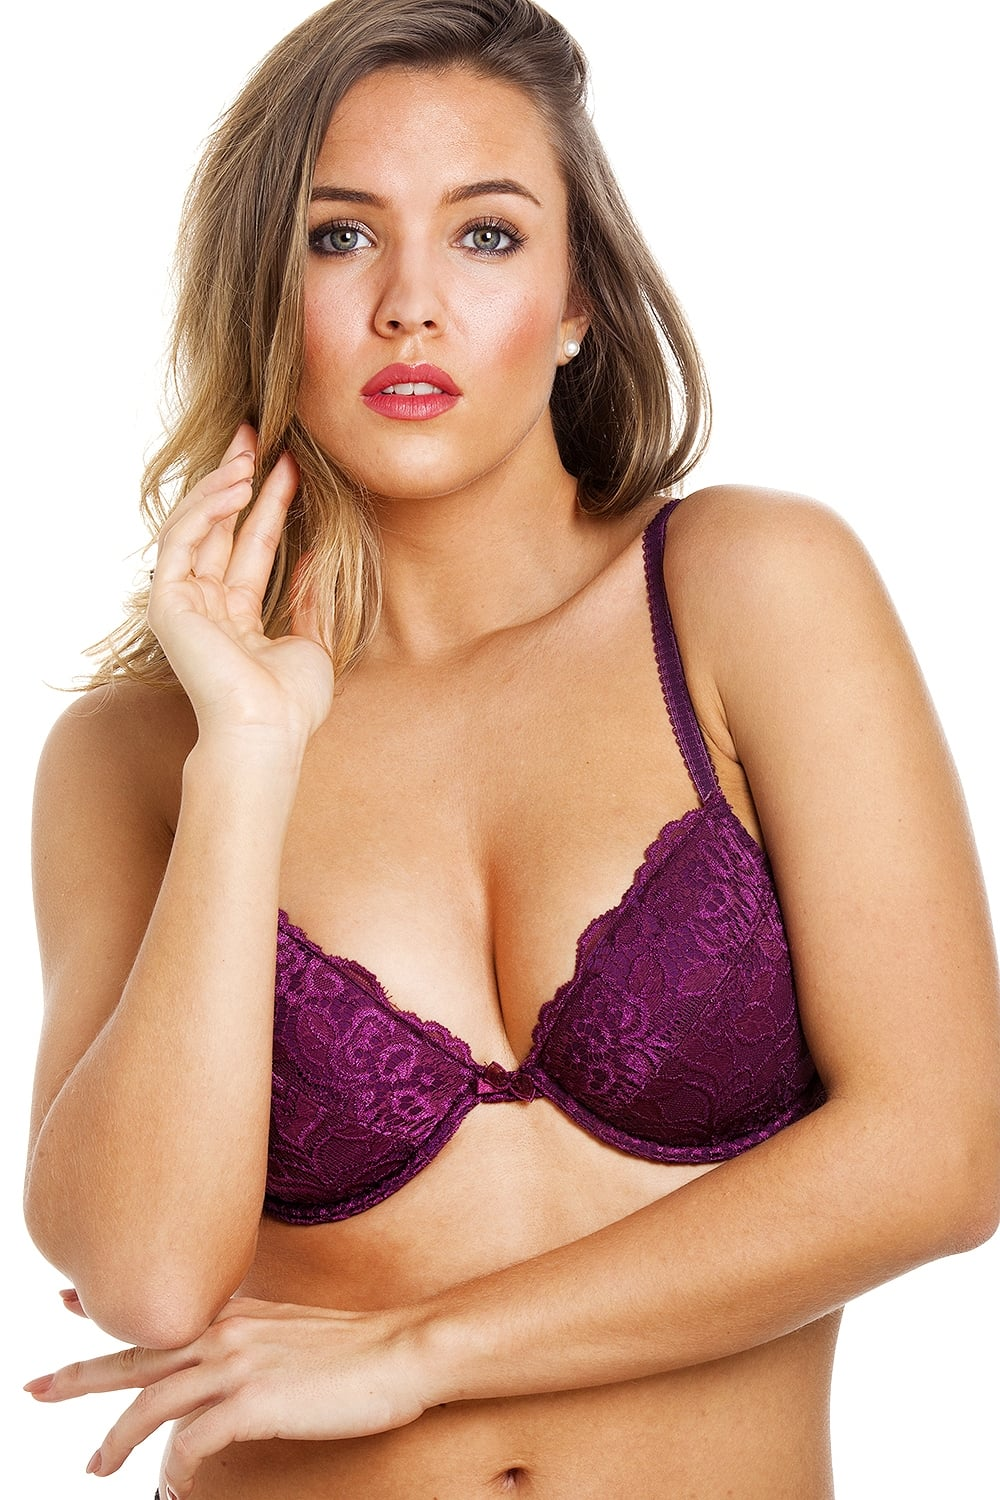 09dbeabd4d Camille Purple Floral Lace Push Up Plunge Padded Underwired Bra